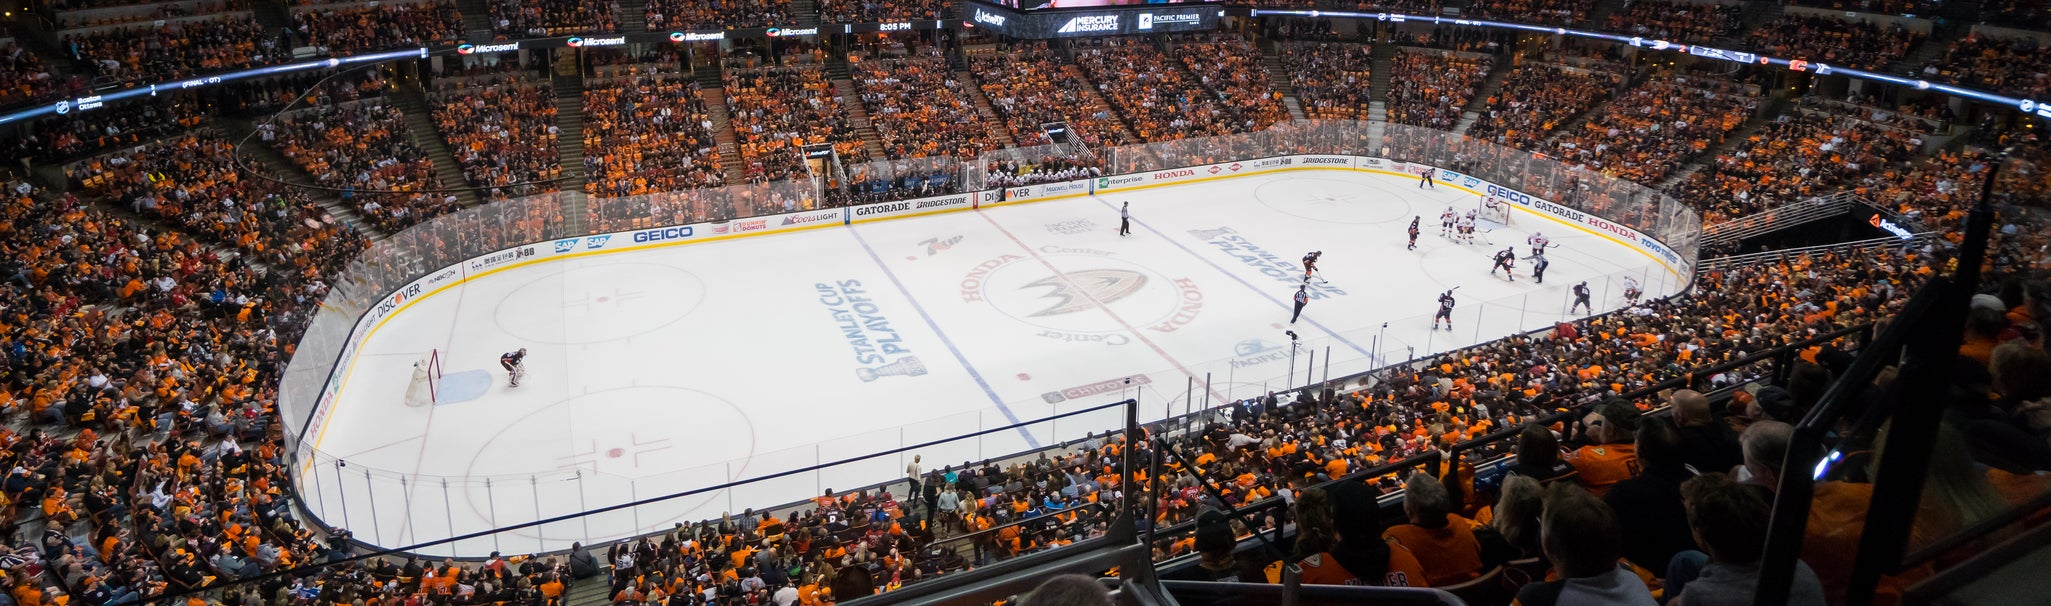 Seat view from Lower Terrace Center